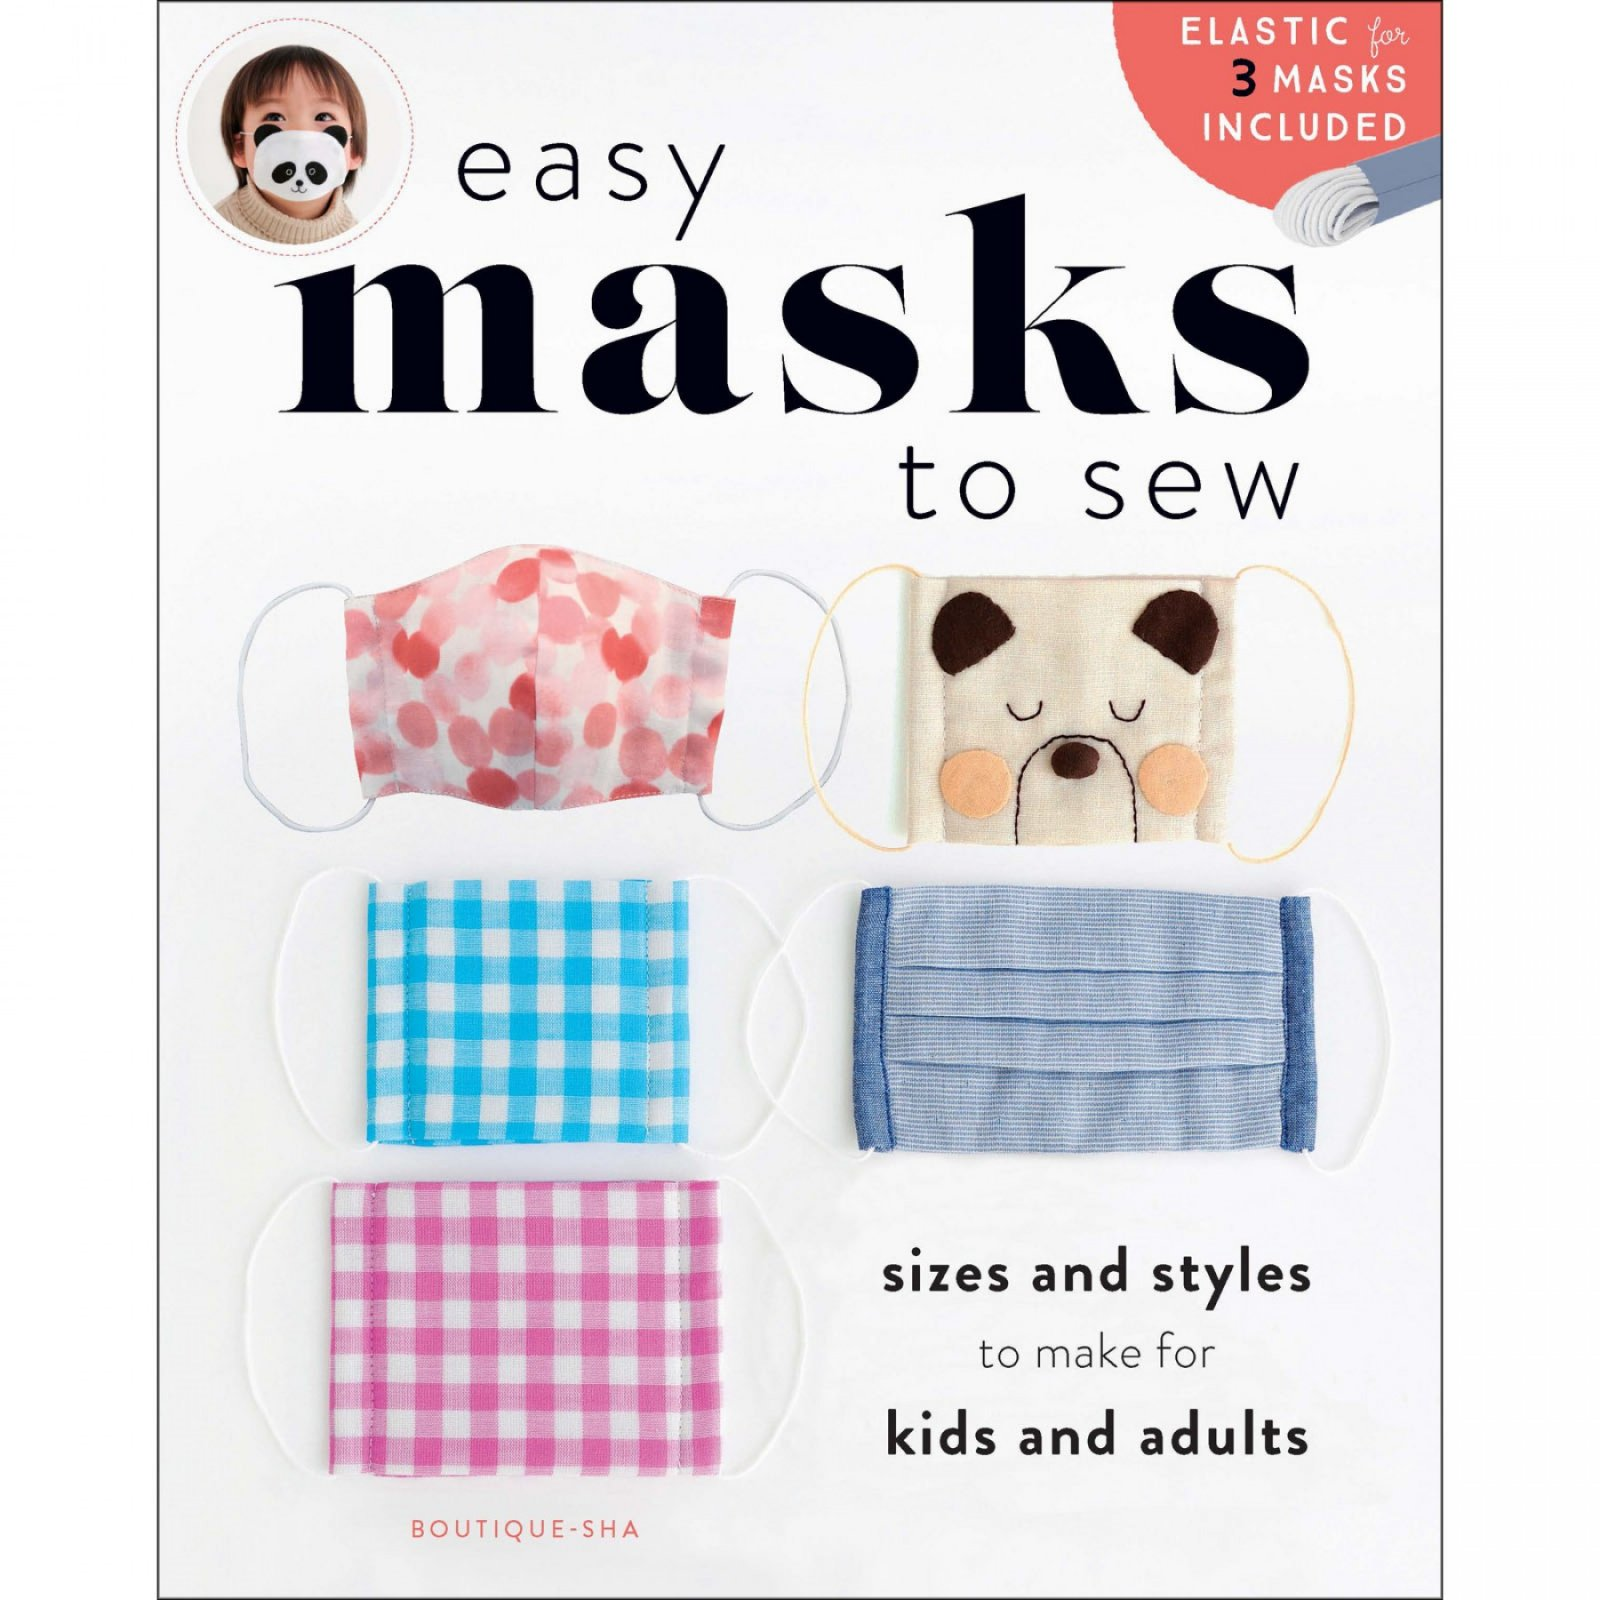 Easy Masks to Sew (for kids and adults)